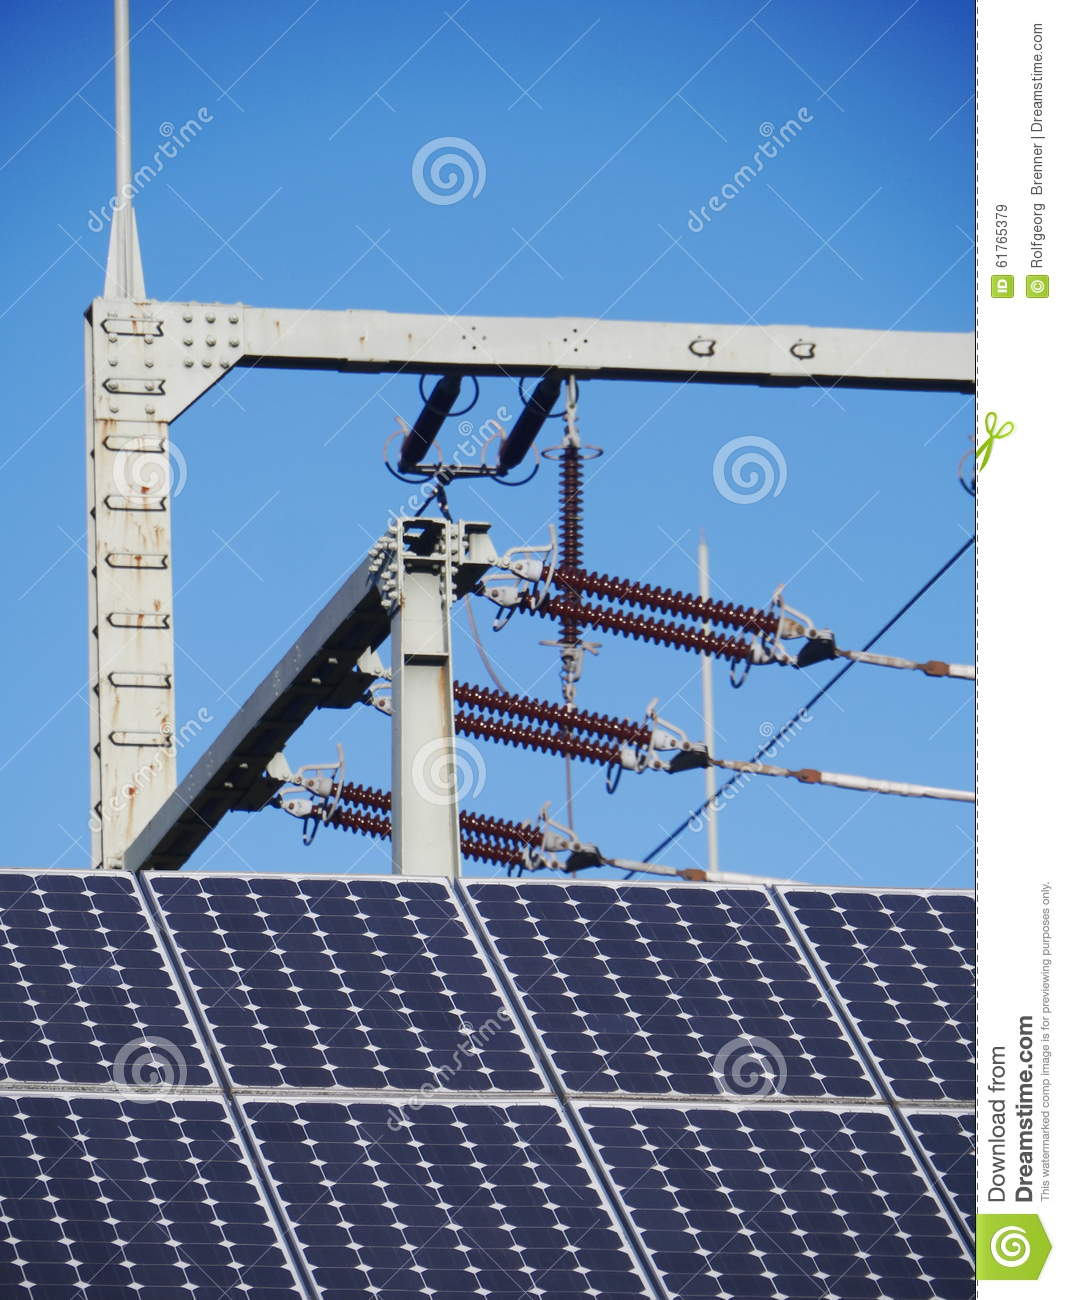 Insulator Solar Cell Stock Image Of Circuit Electric 61765379 Download